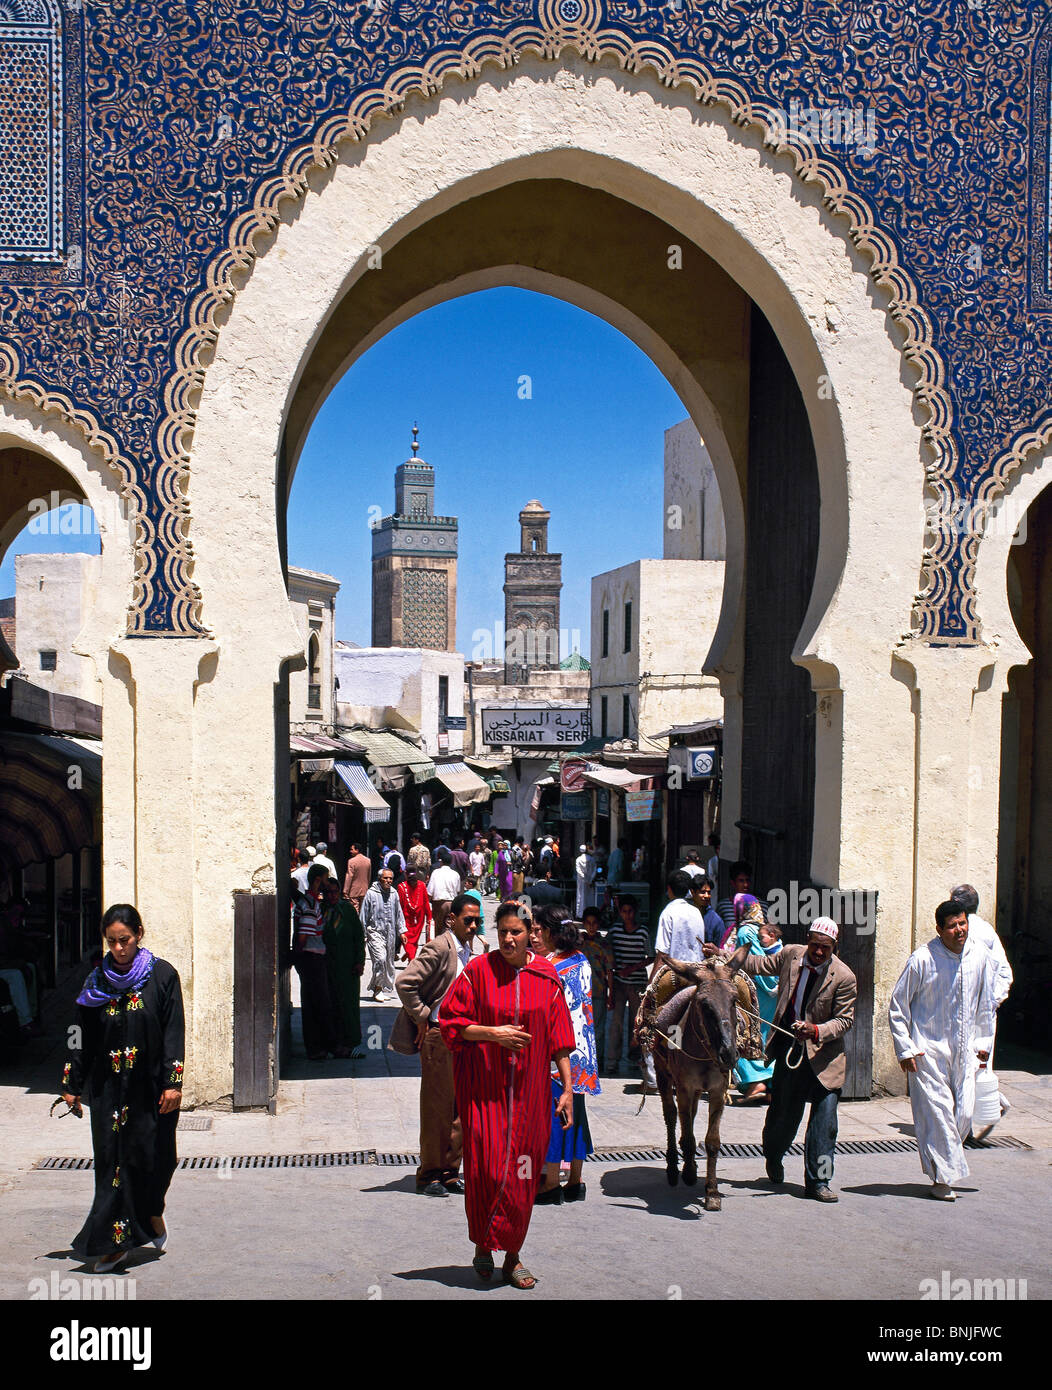 Morocco February 2007 Fes city Bab Bou jelud Entrance to Medina gate people locals - Stock Image